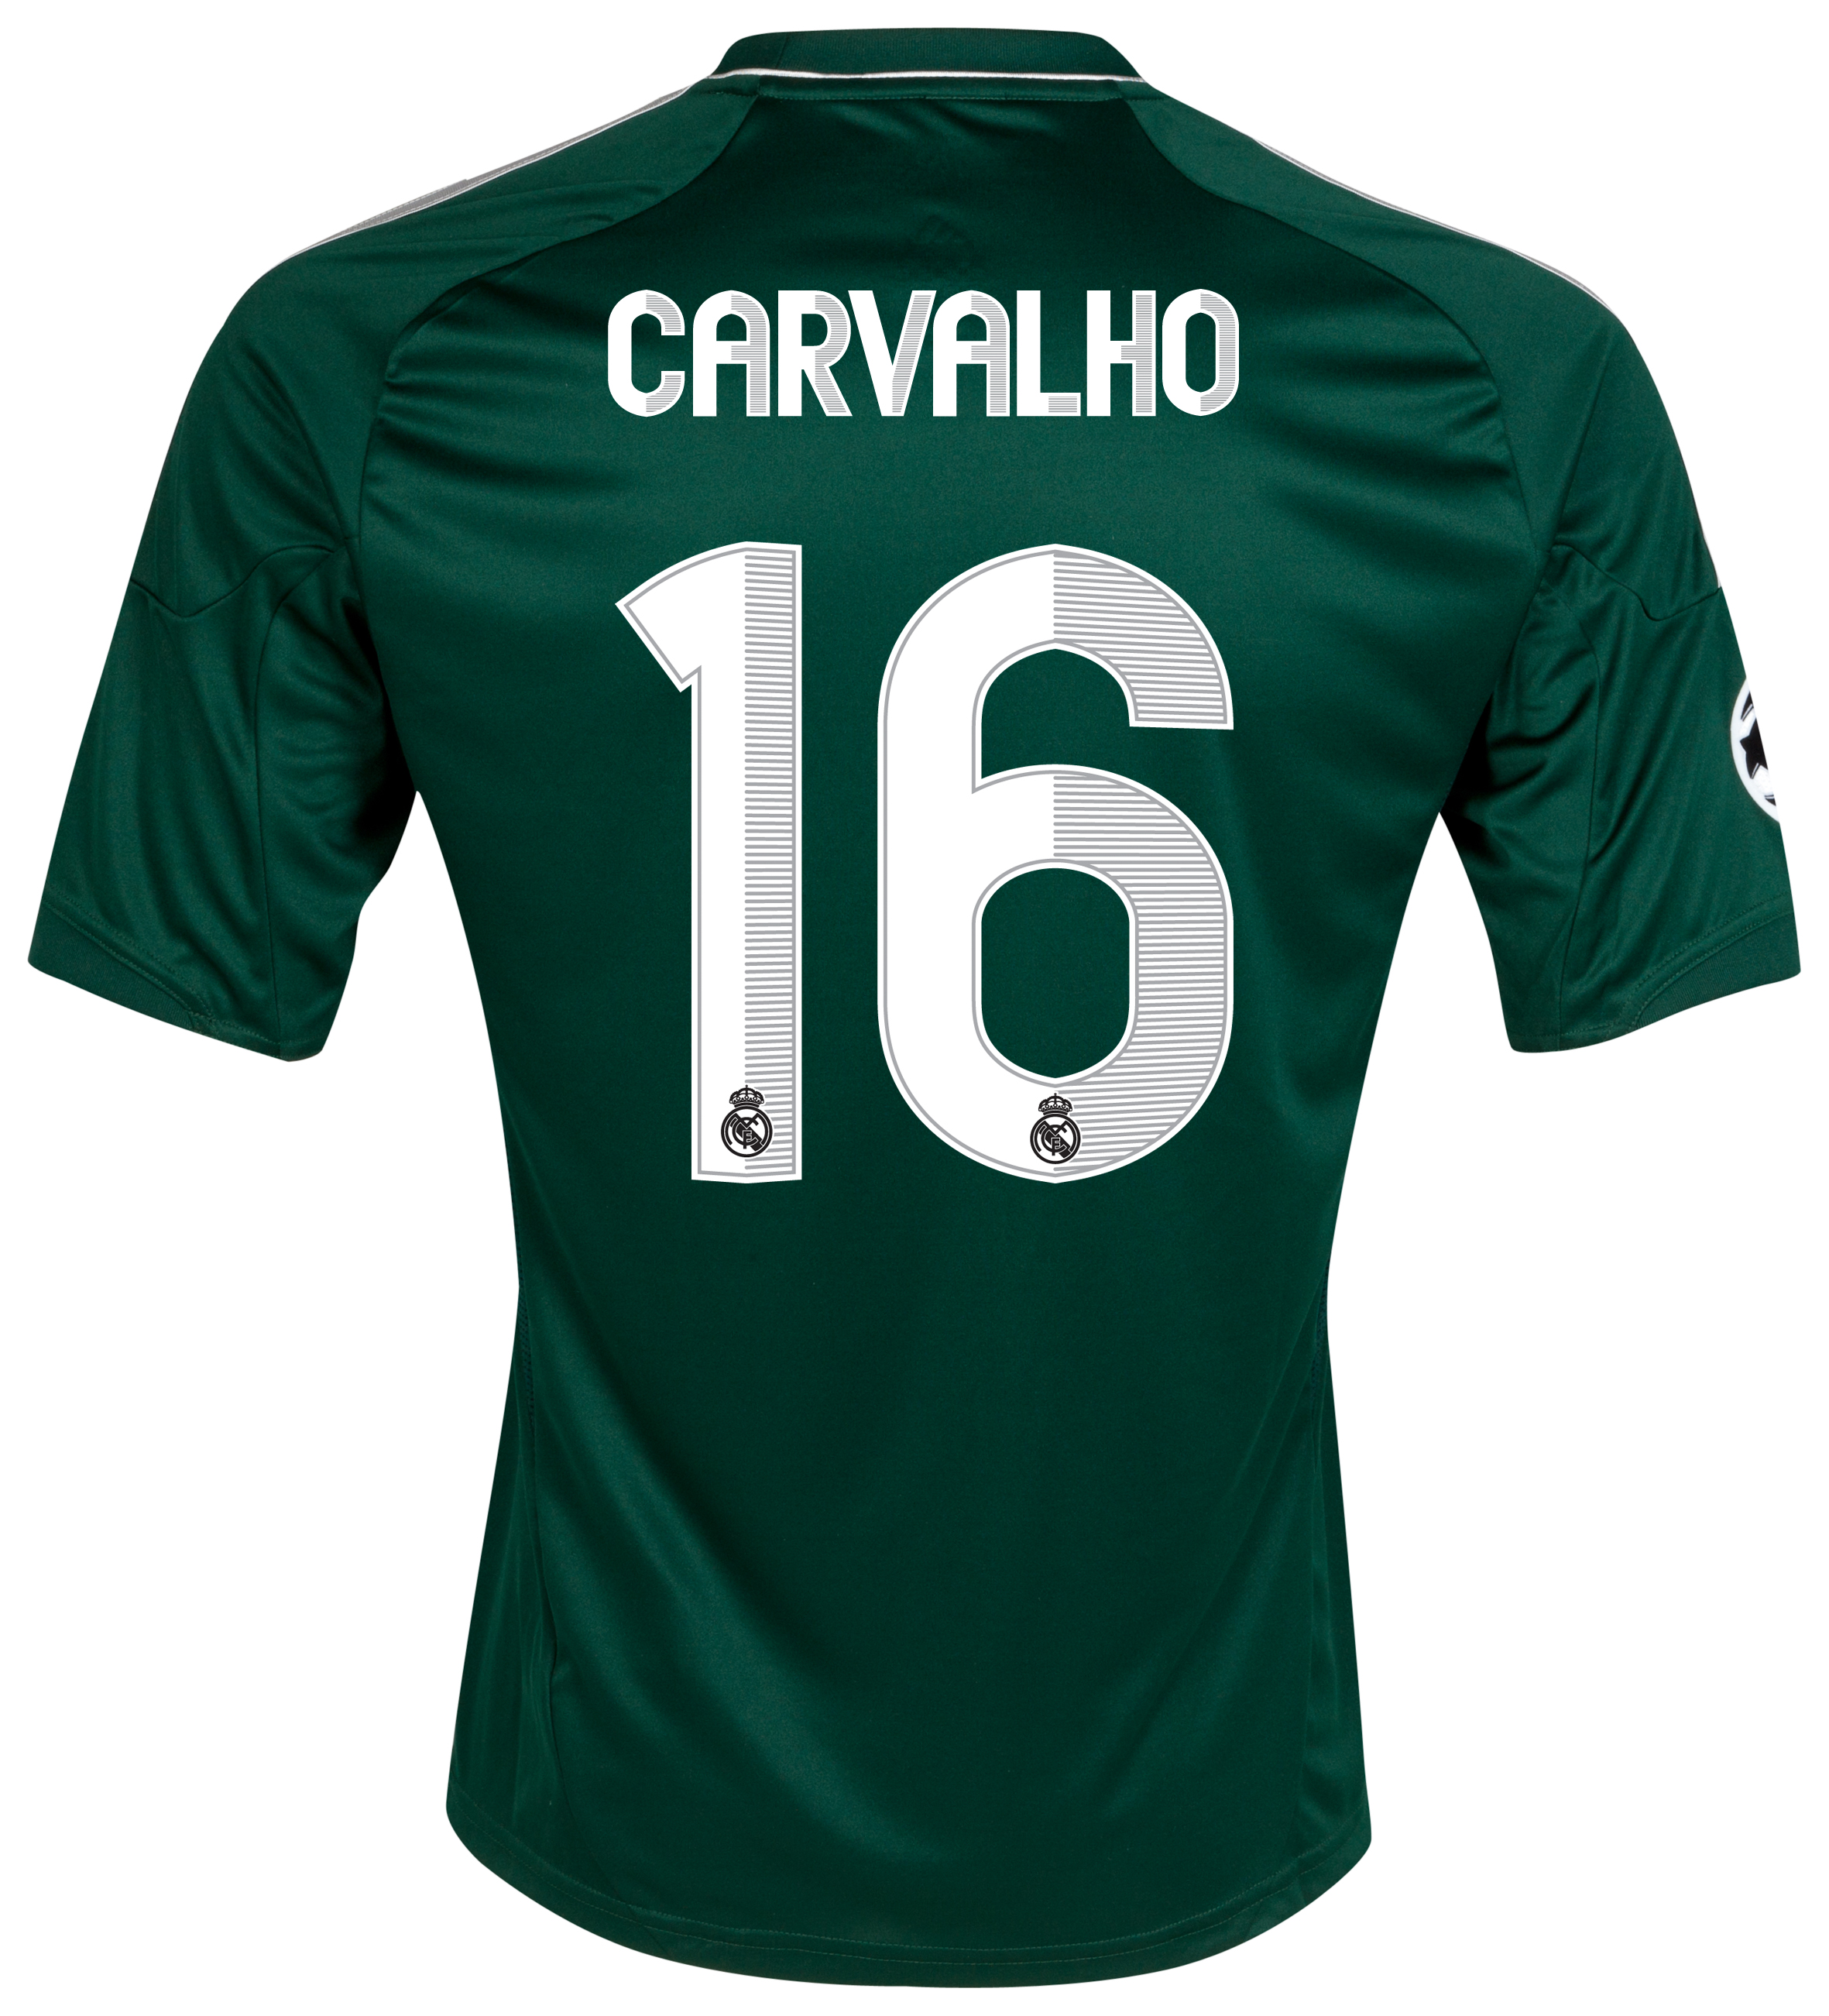 Real Madrid UEFA Champions League Third Shirt 2012/13 - Youths with Carvalho 16 printing